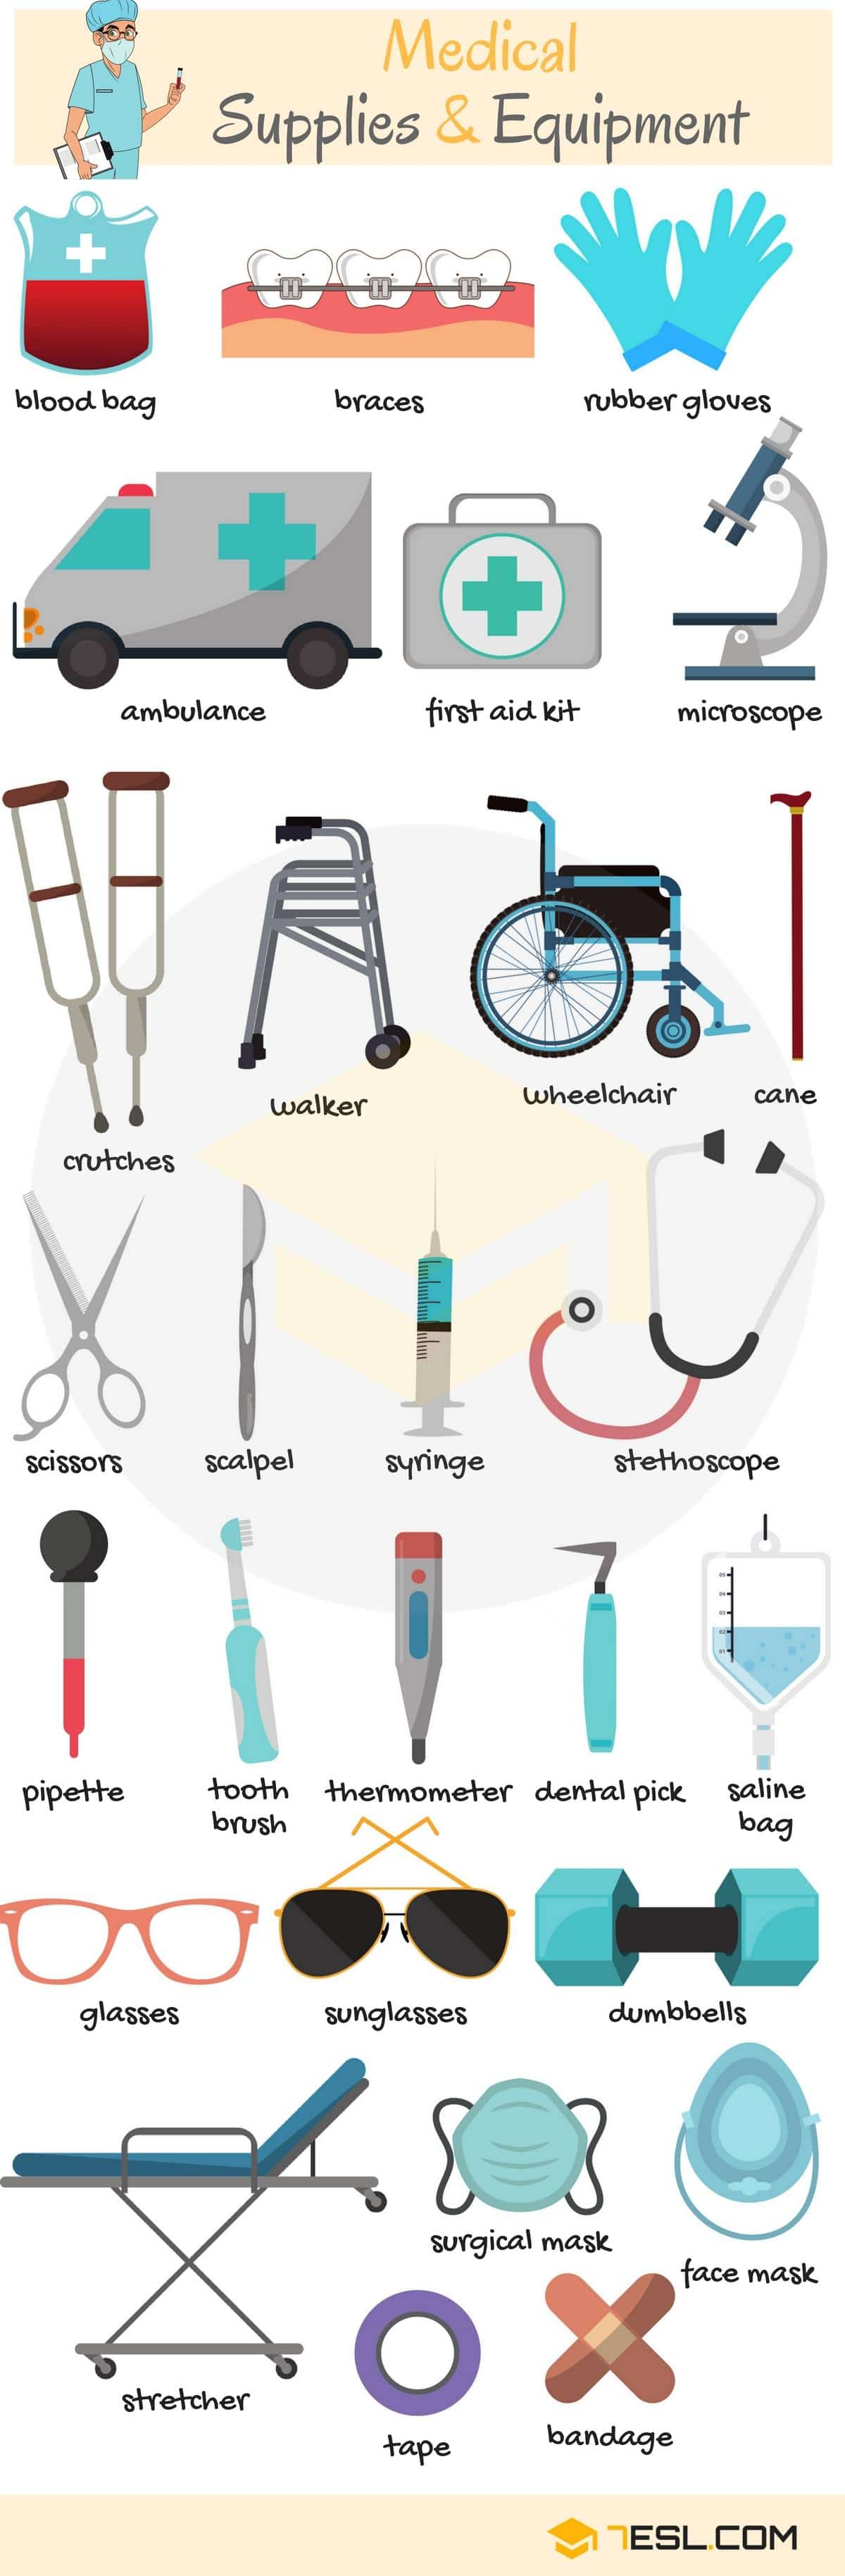 Medical Supply List Of Medical Supplies And Equipment In